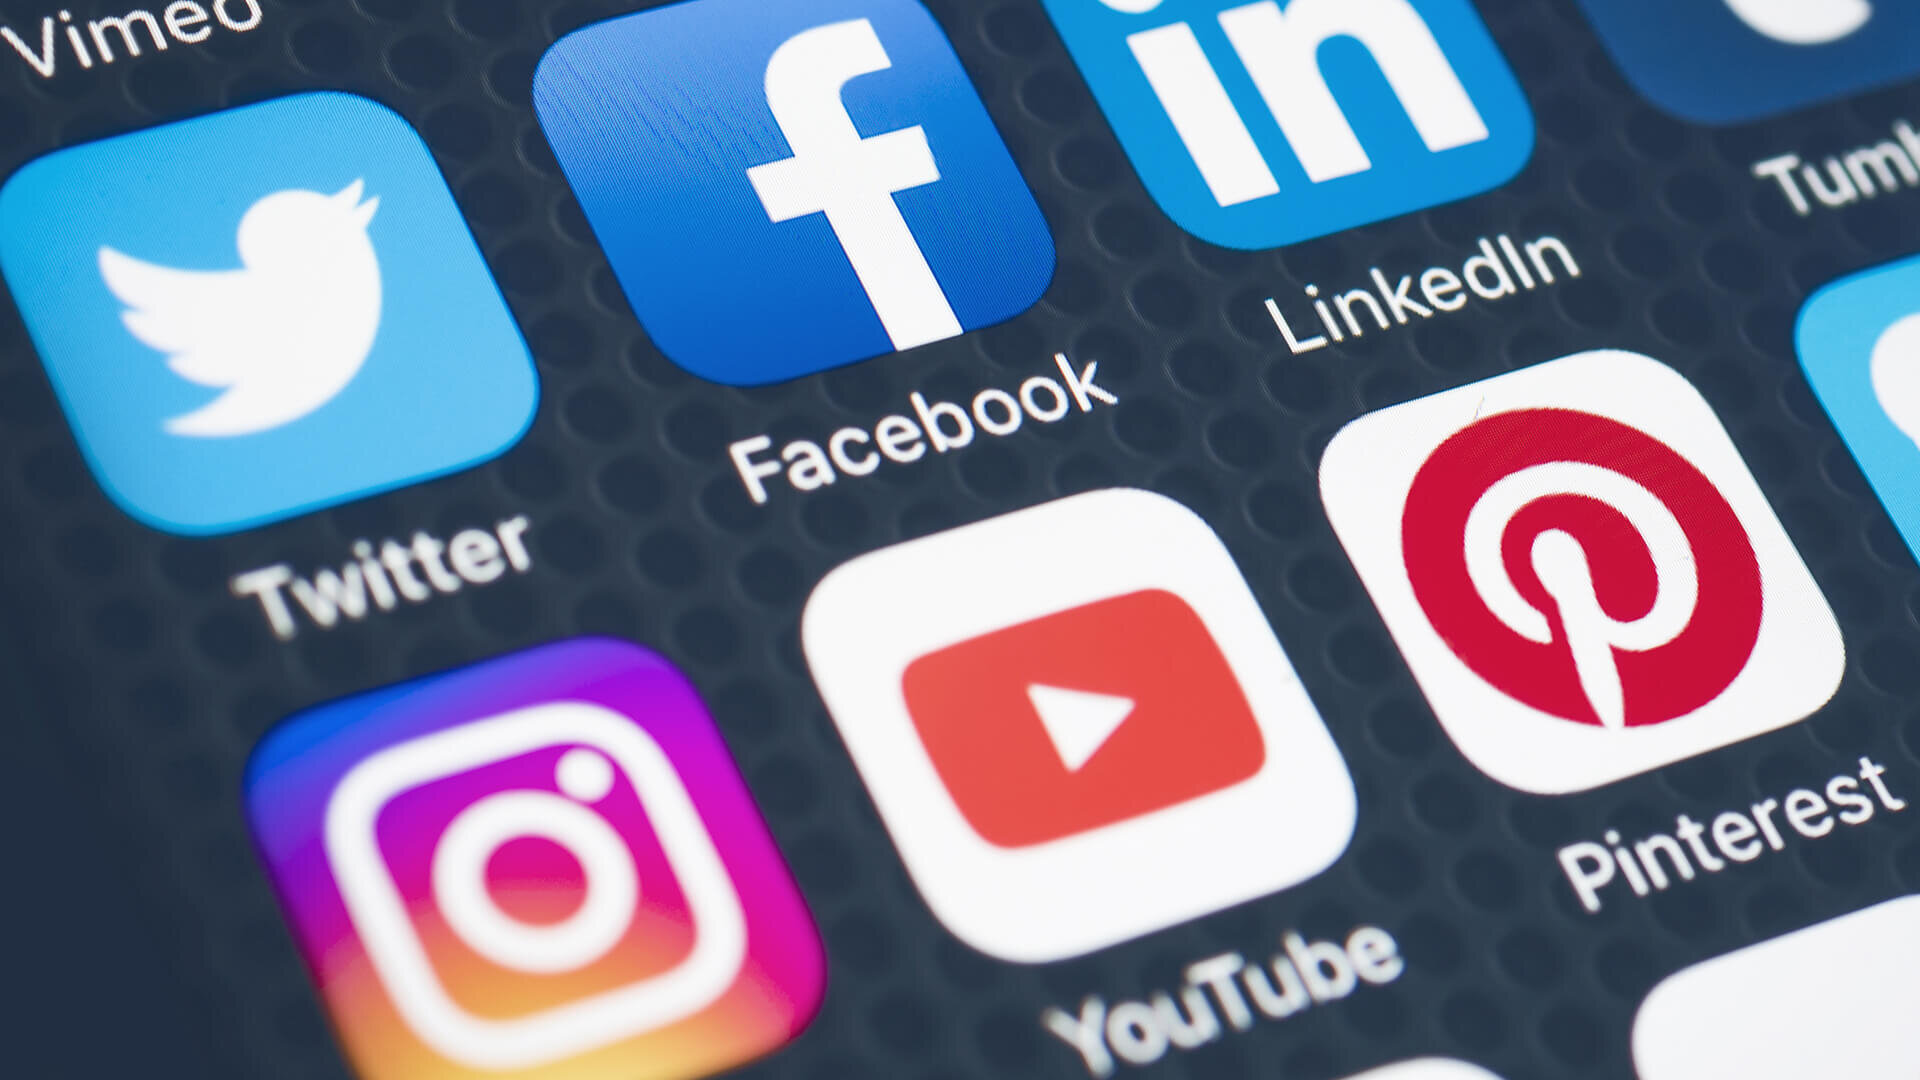 WHAT WE DO - Social media is a living organism